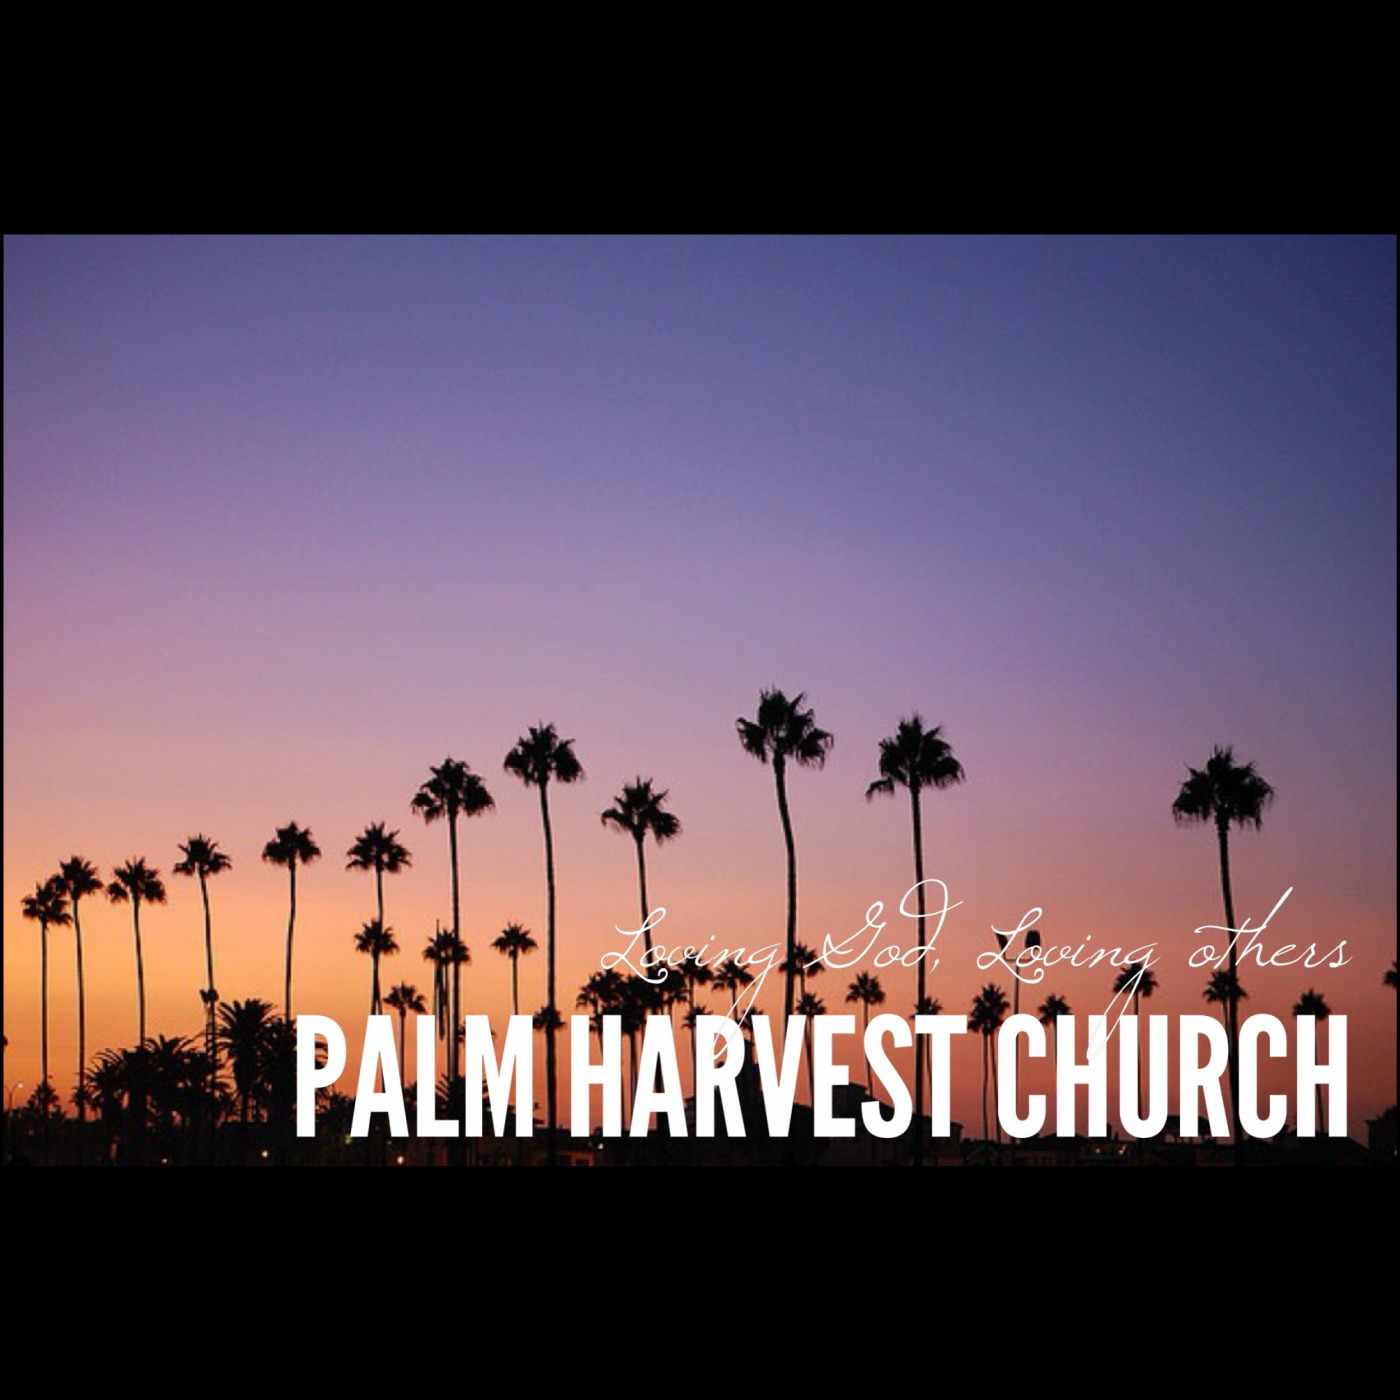 Dr. Mike Decker at Palm Harvest Church